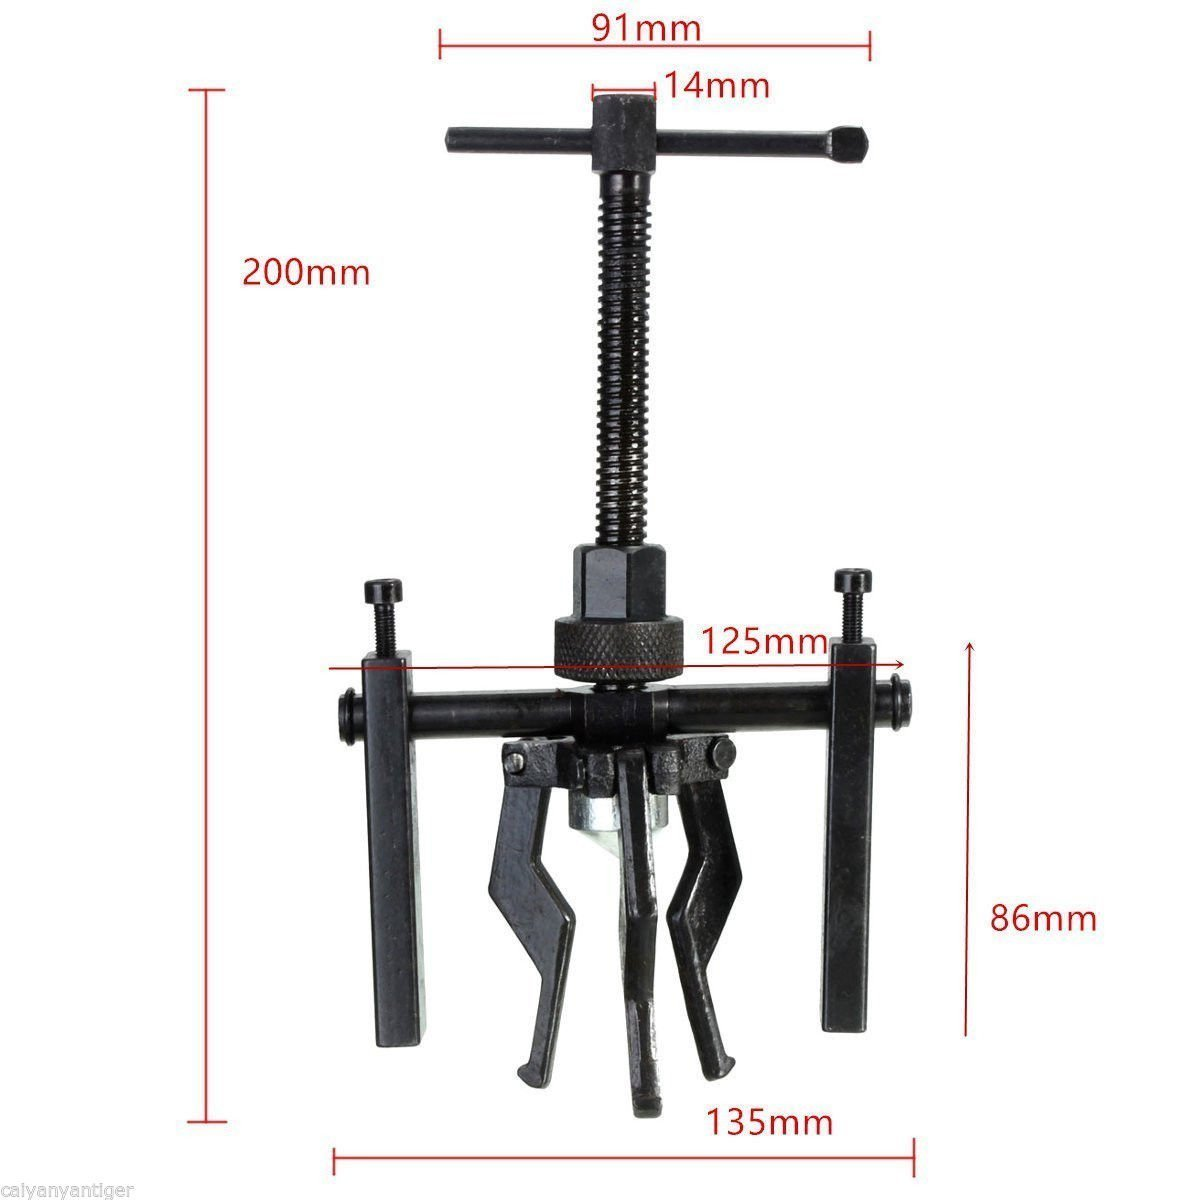 3-Jaw Inner Bearing Puller Gear Extractor Heavy Duty Automotive Machine Tool Kit Size 200x135mm 3 Jaws for Removes All Sleeve-type Bearings with 1//2-2 inside Diameter